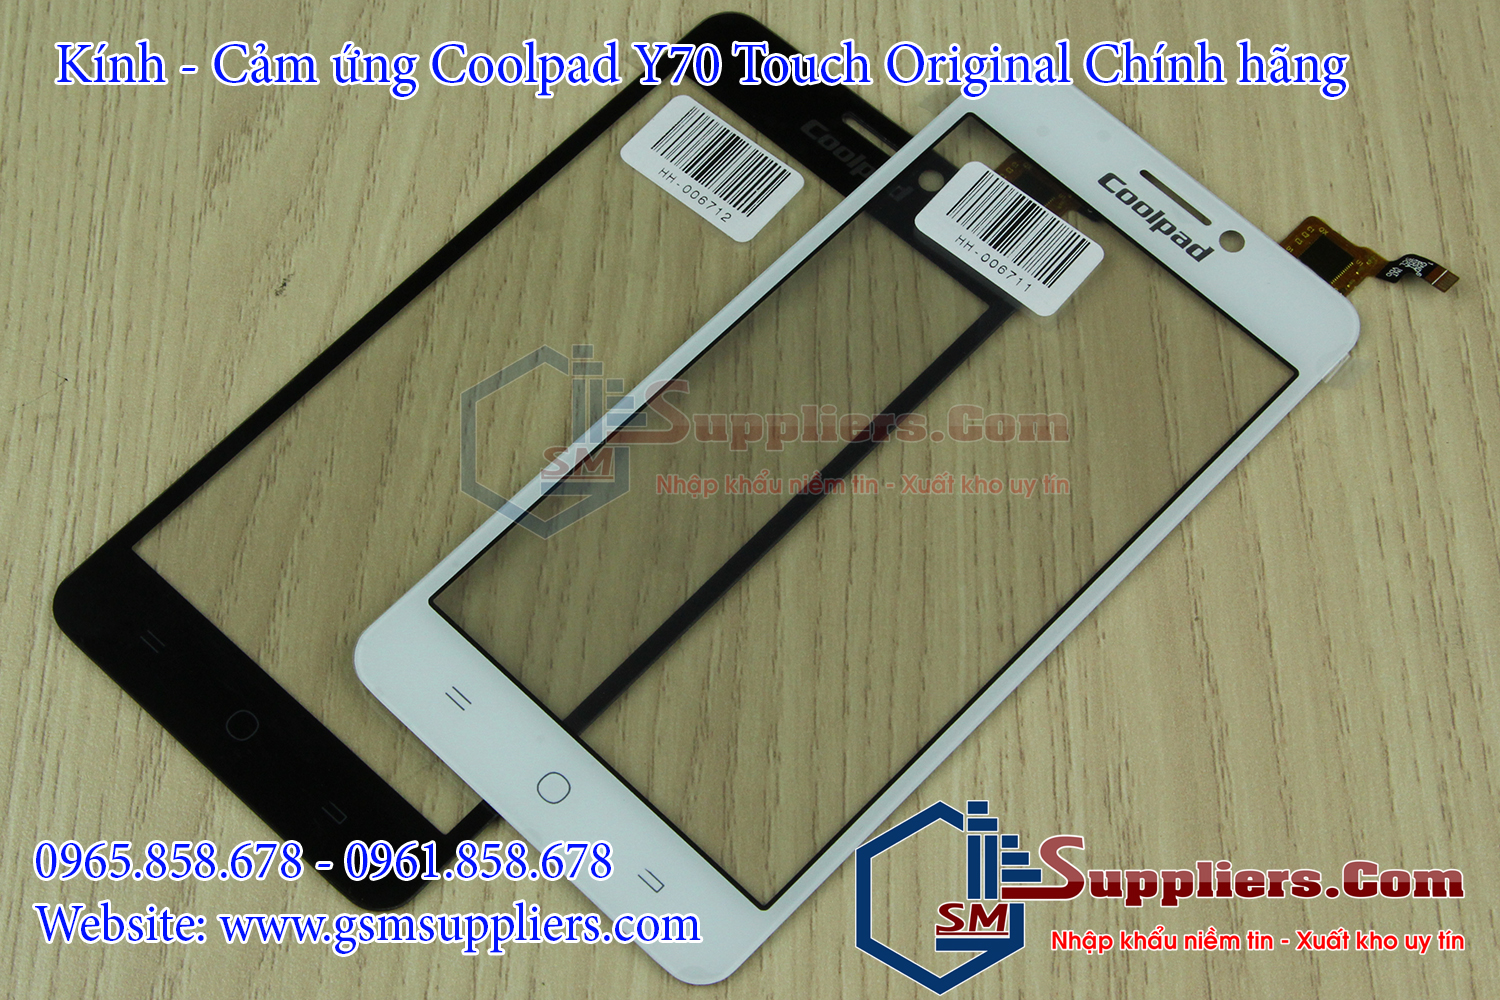 cam ung coolpad y70 hang chinh hang gia re tai ha noi